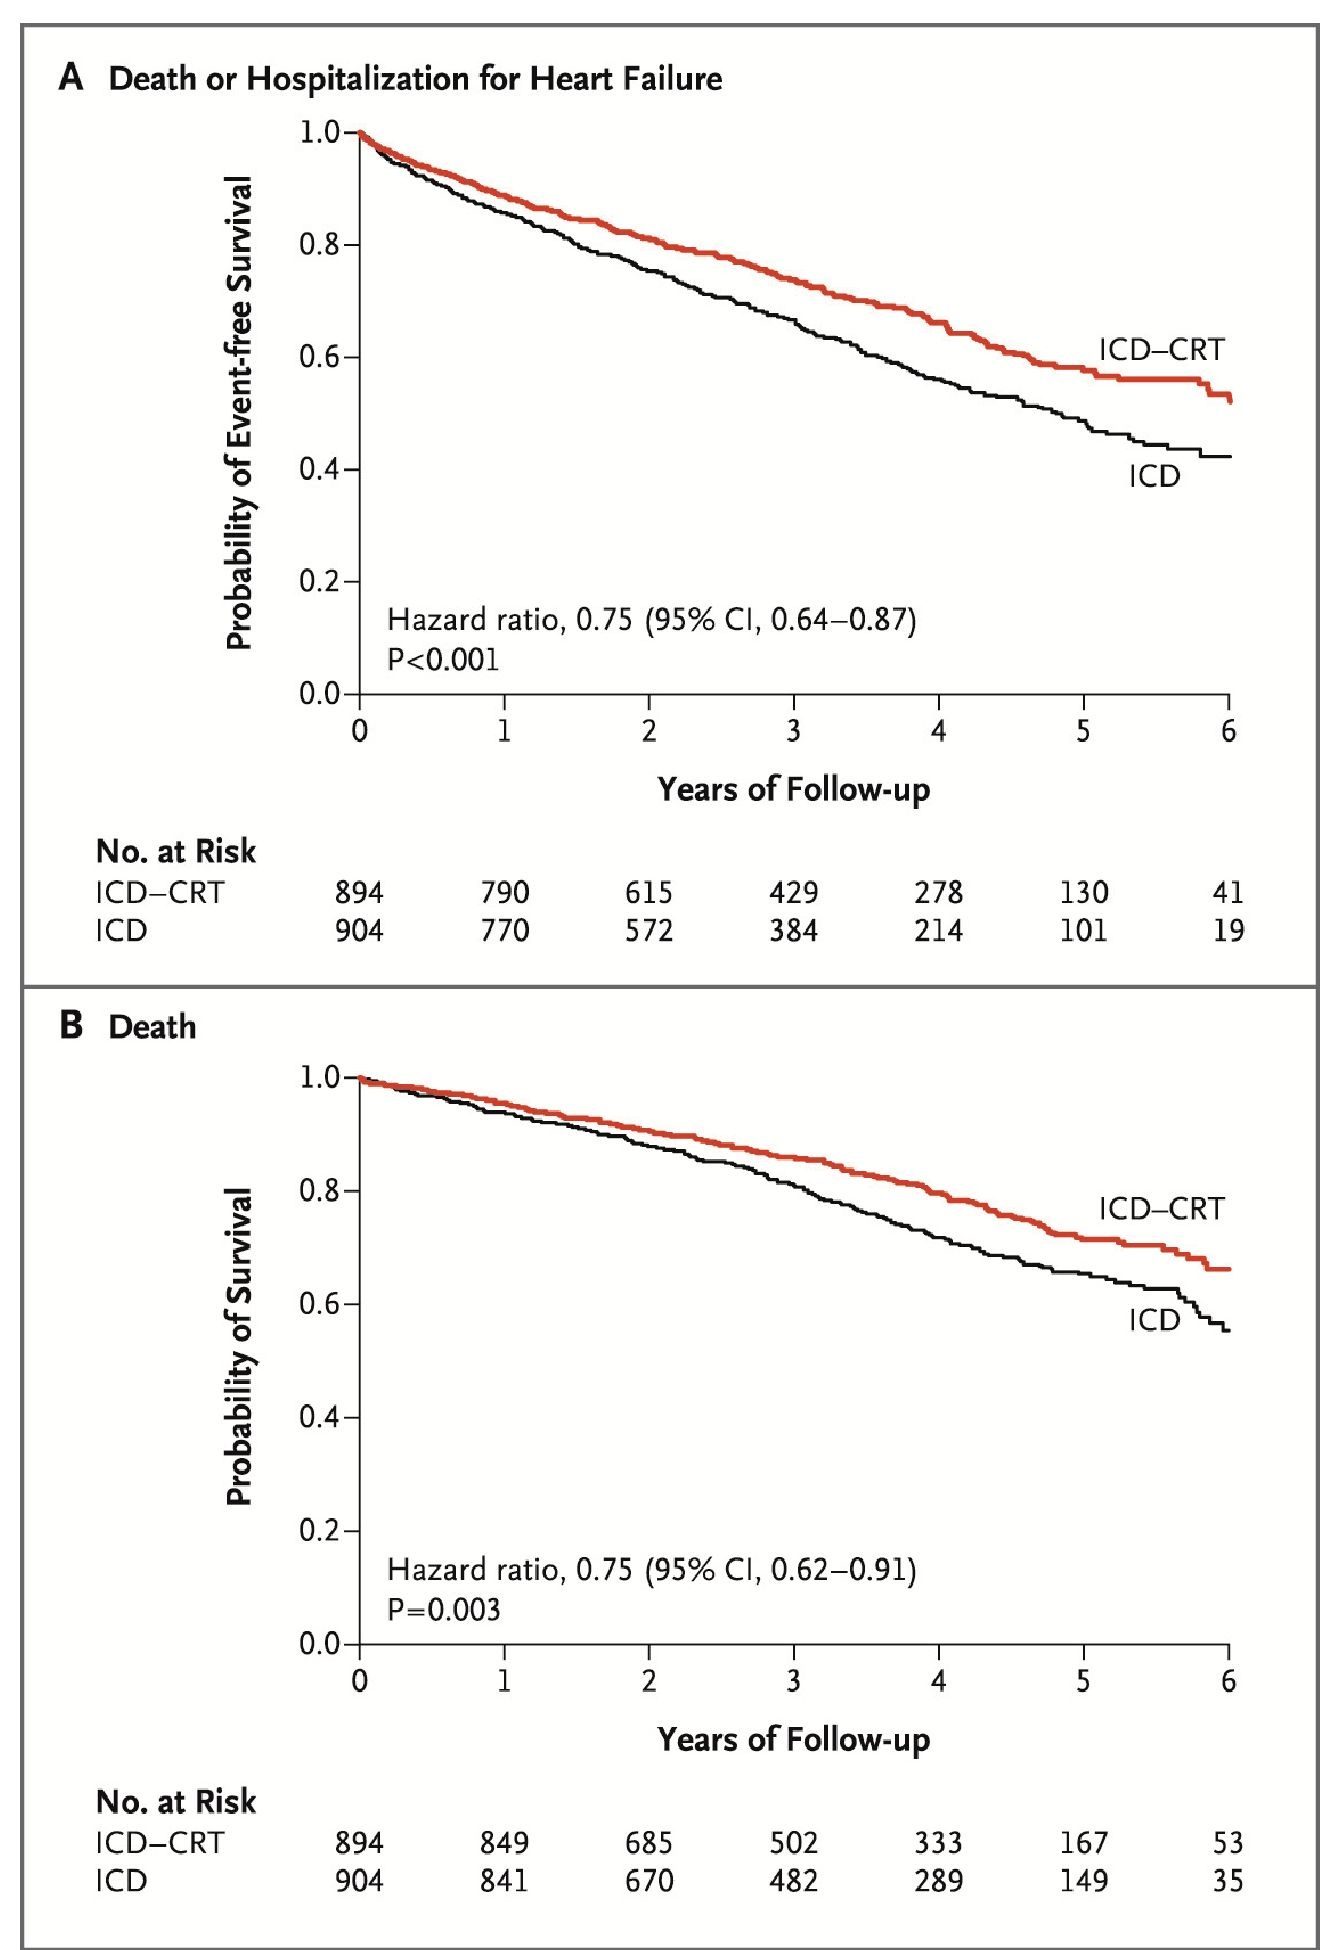 Kaplan Meier Estimates of Death or Hospitalization for Heart Failure (Panel A) and Death from Any Cause (Panel B).